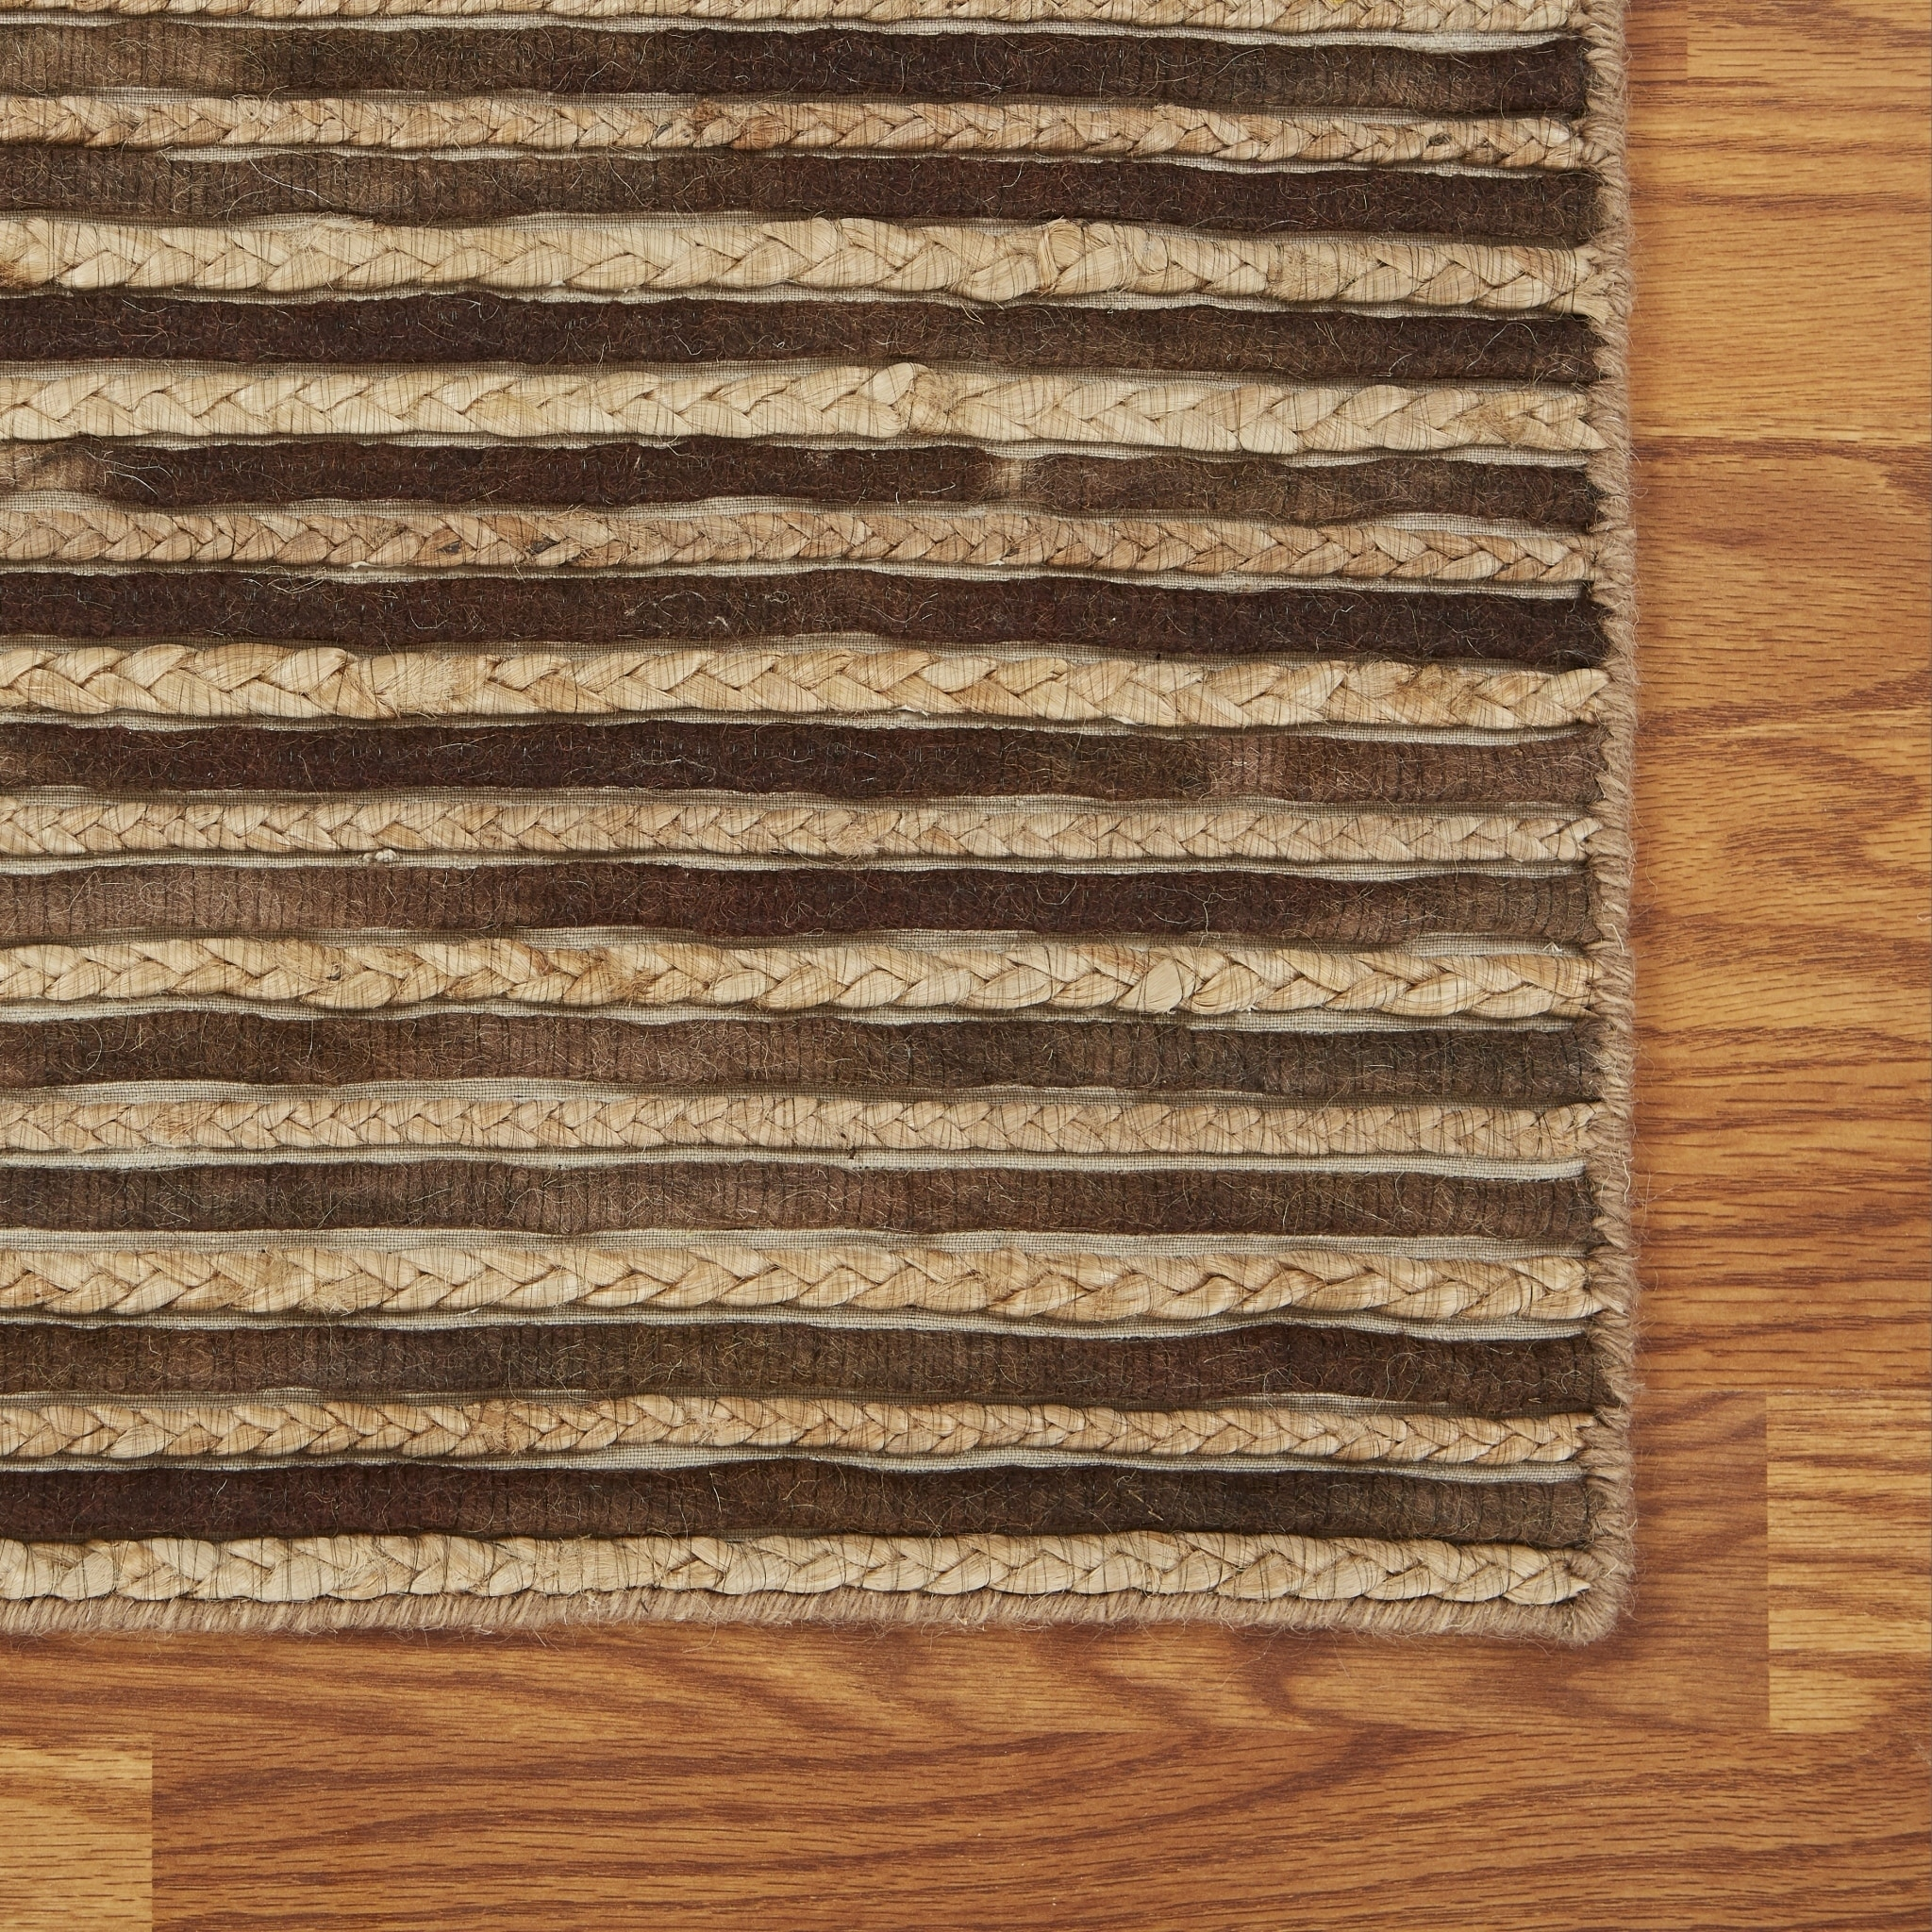 9 X 12 Lodge Rugs Area For Less